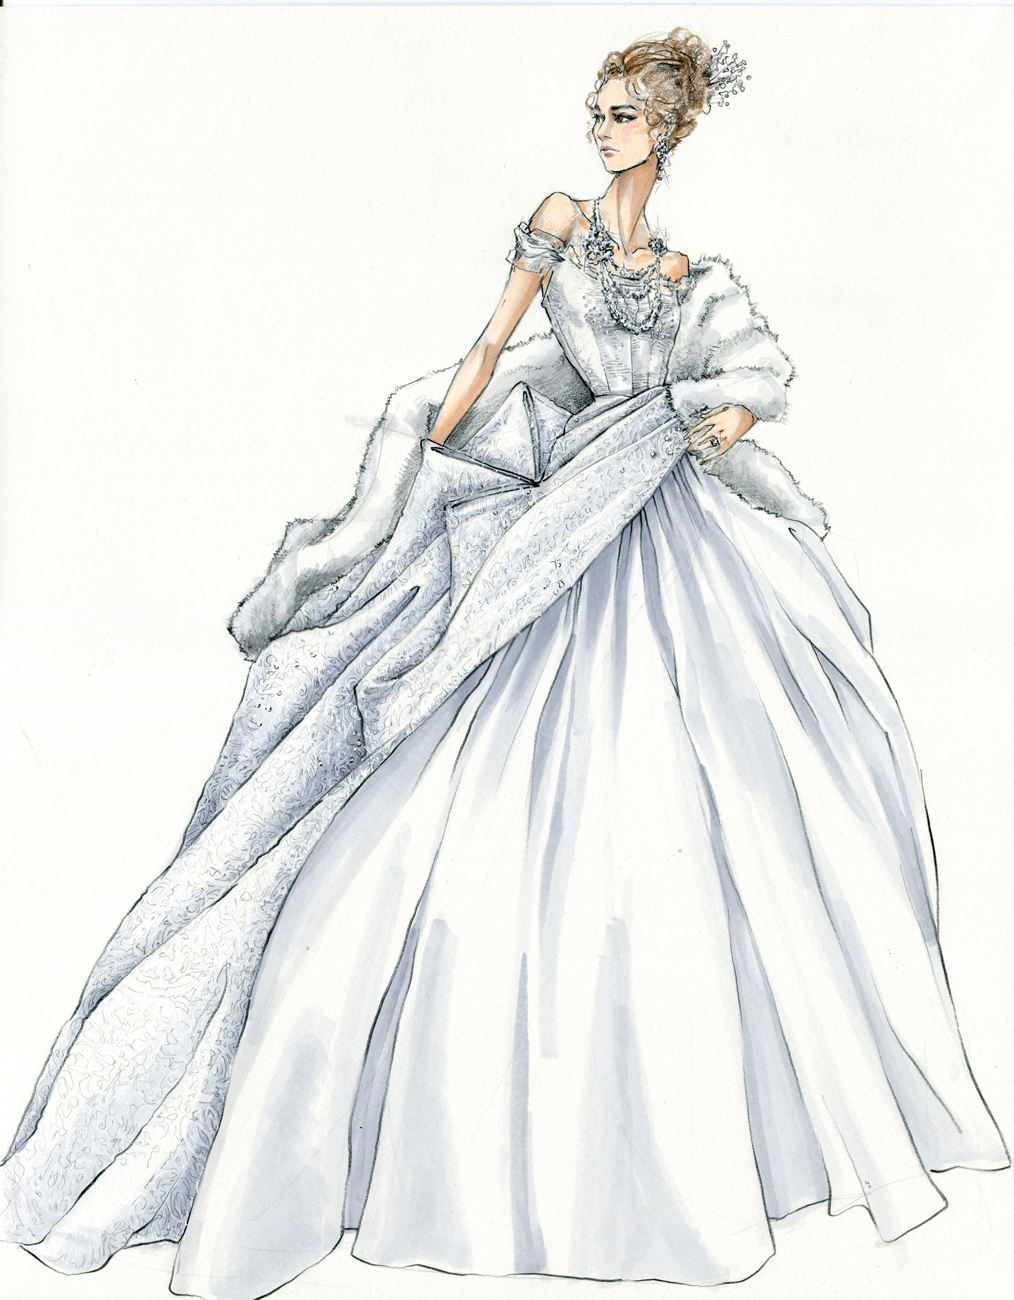 White dress drawing - Sketch To Still How Anna Karenina S Ill Fated Heroine Came To Wear Unlucky Capes Couture Inspired Gowns And 2 Million In Chanel Jewels